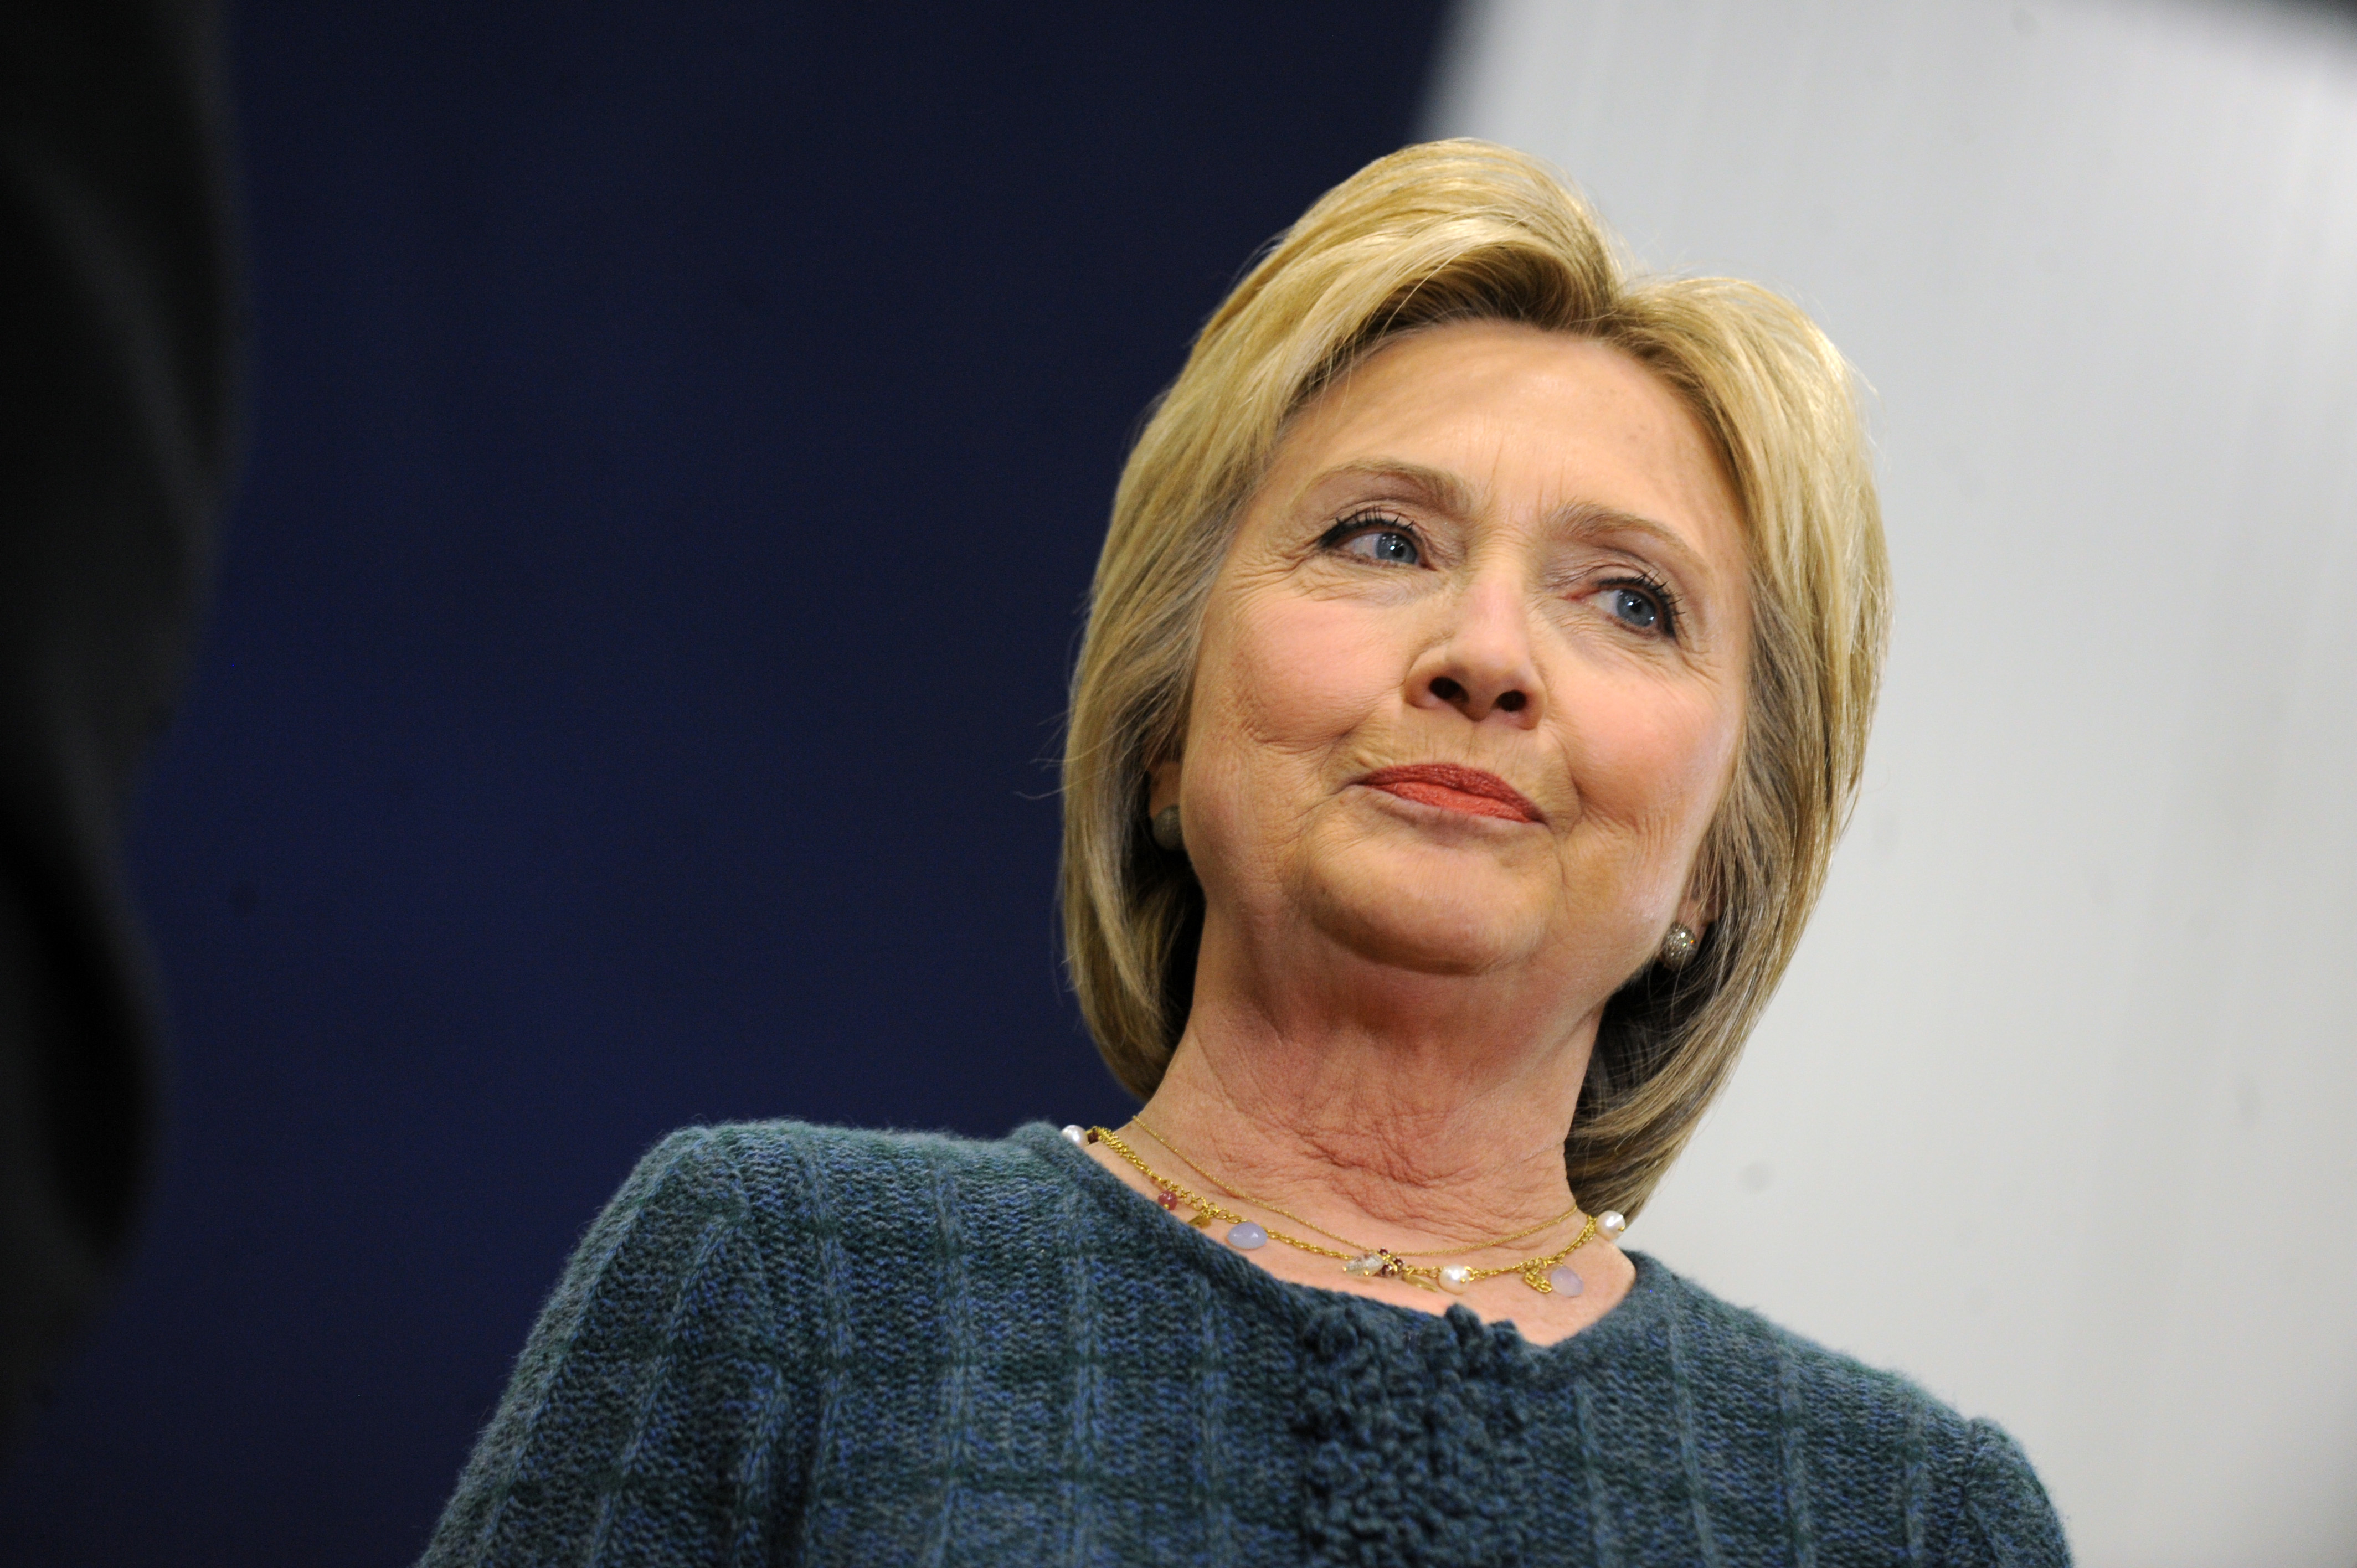 ICM's Chris Silbermann to Host Hillary Clinton for March 24 Fundraiser